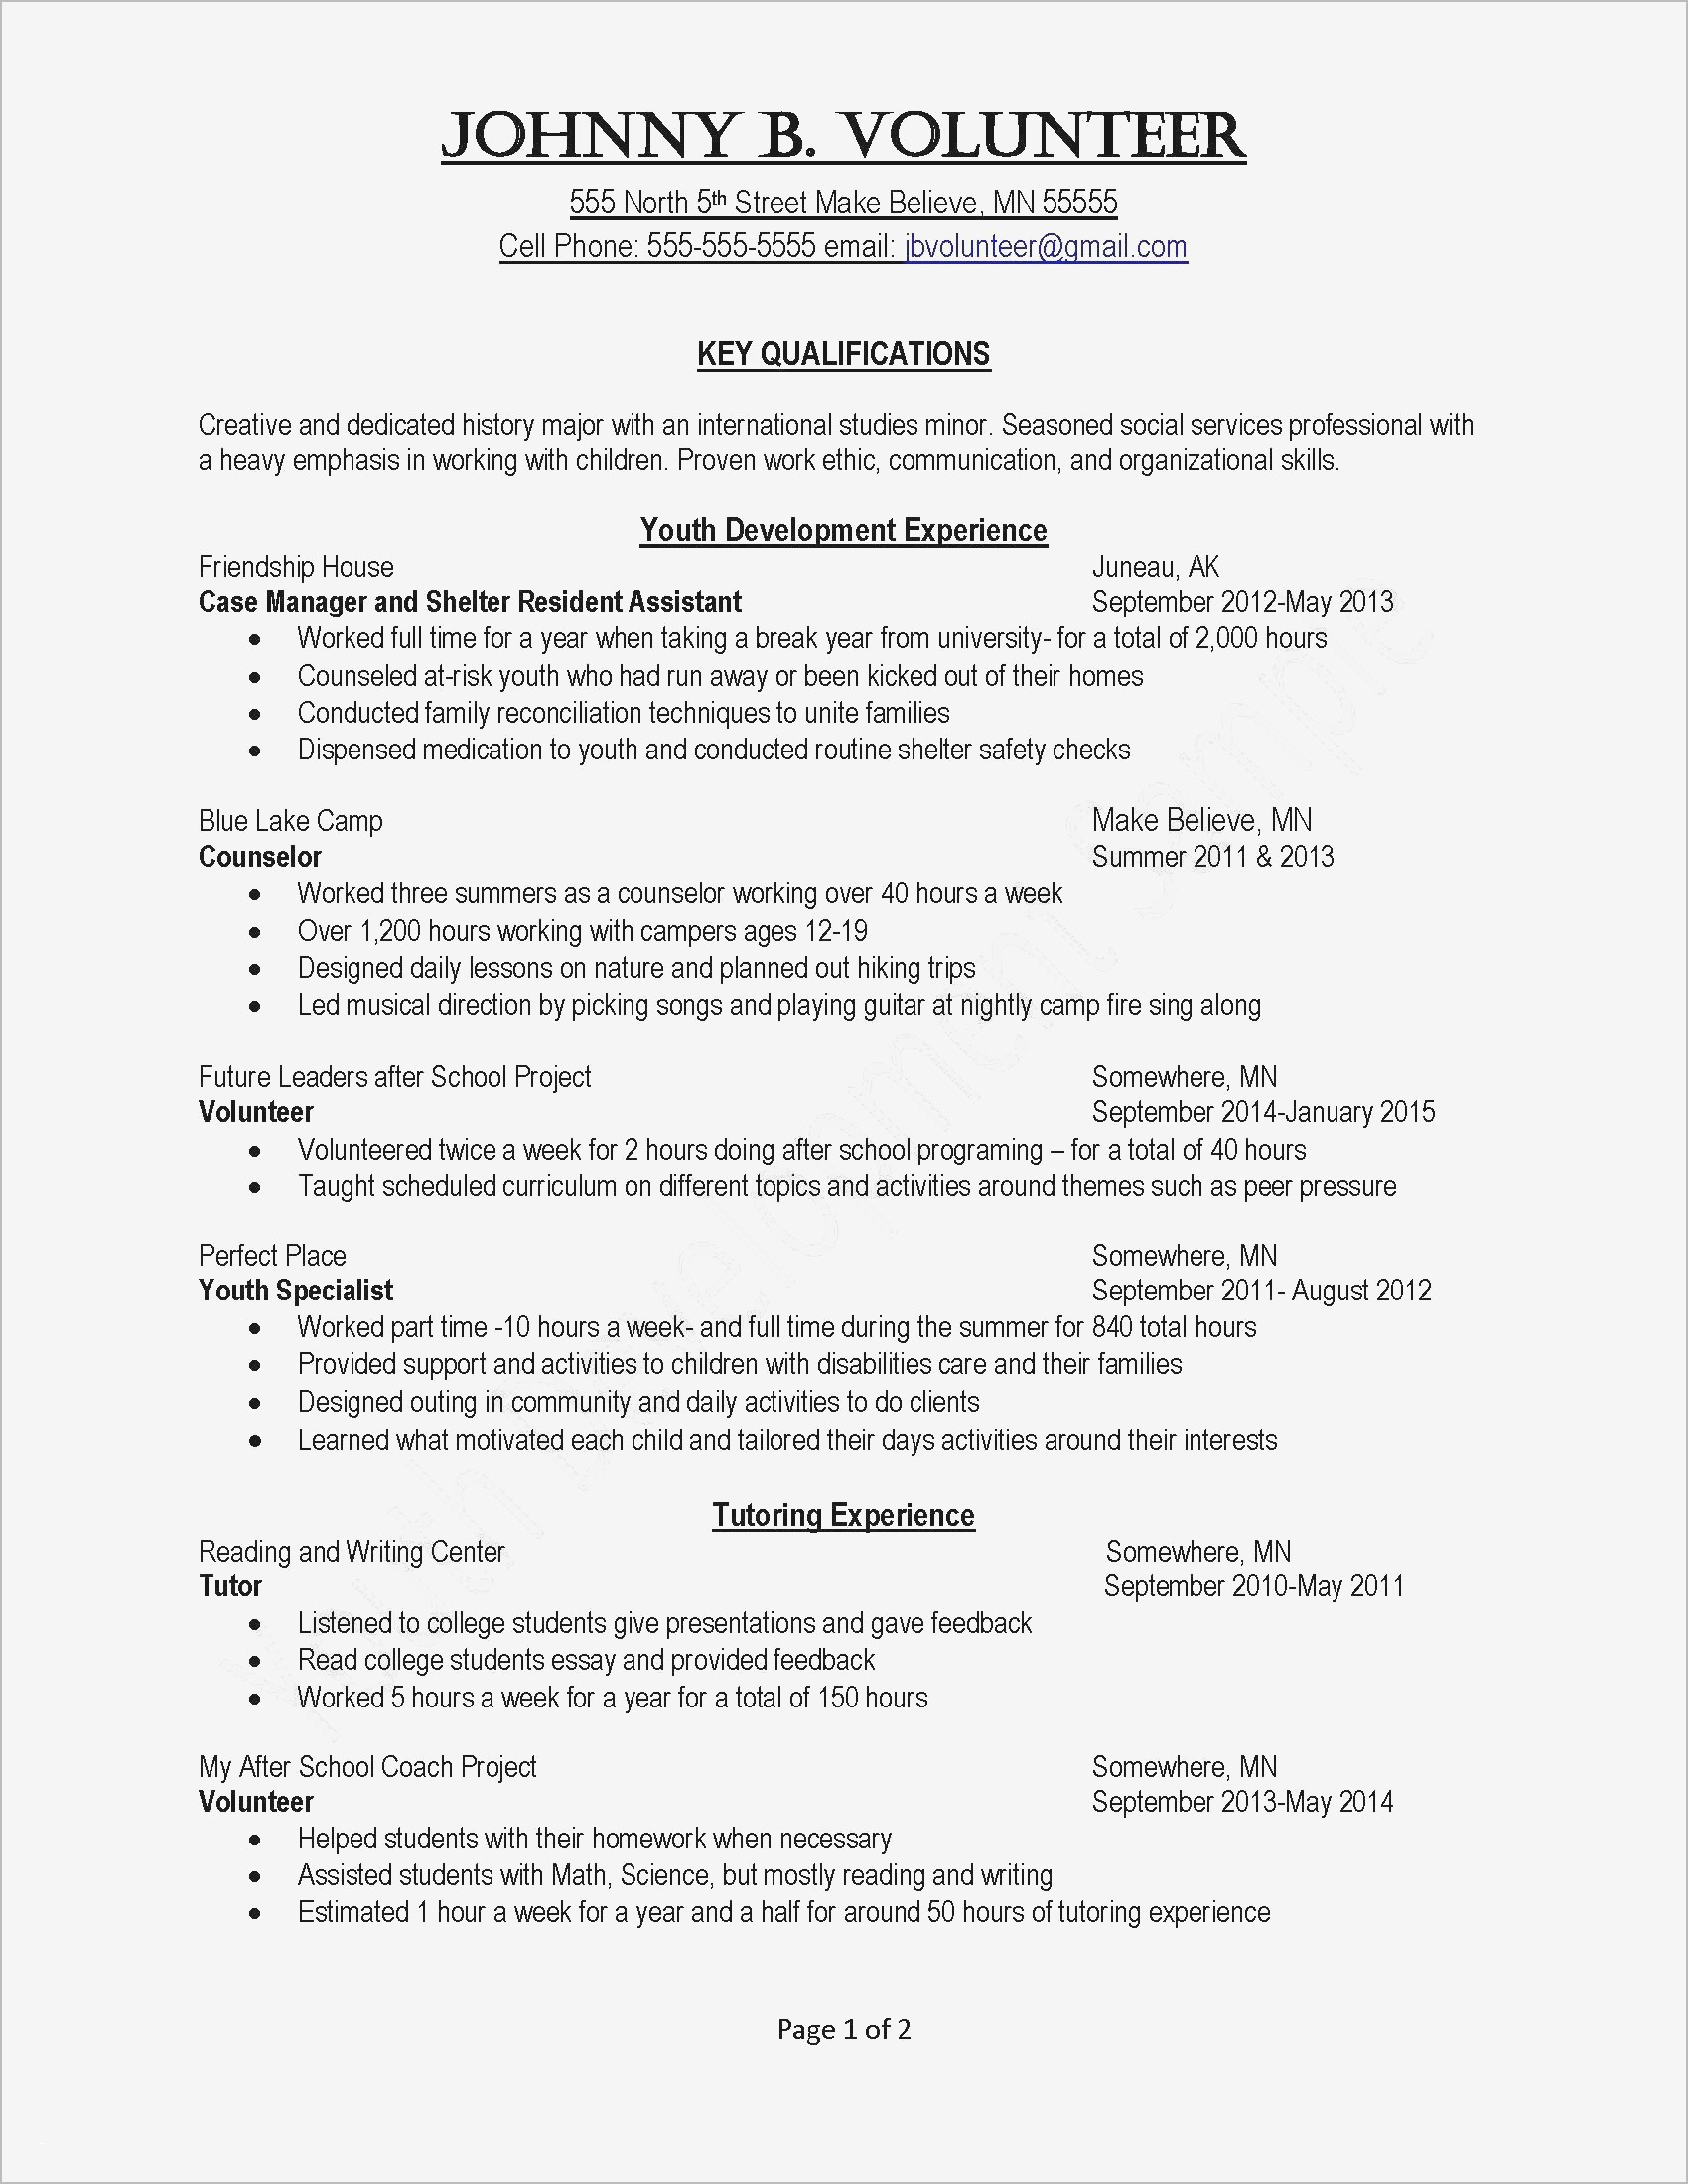 food service resume template example-Professional Resume Templates Beautiful Writing A Resume 2017 Amazing Resumes Skills Examples Resume Professional Resume 10-o